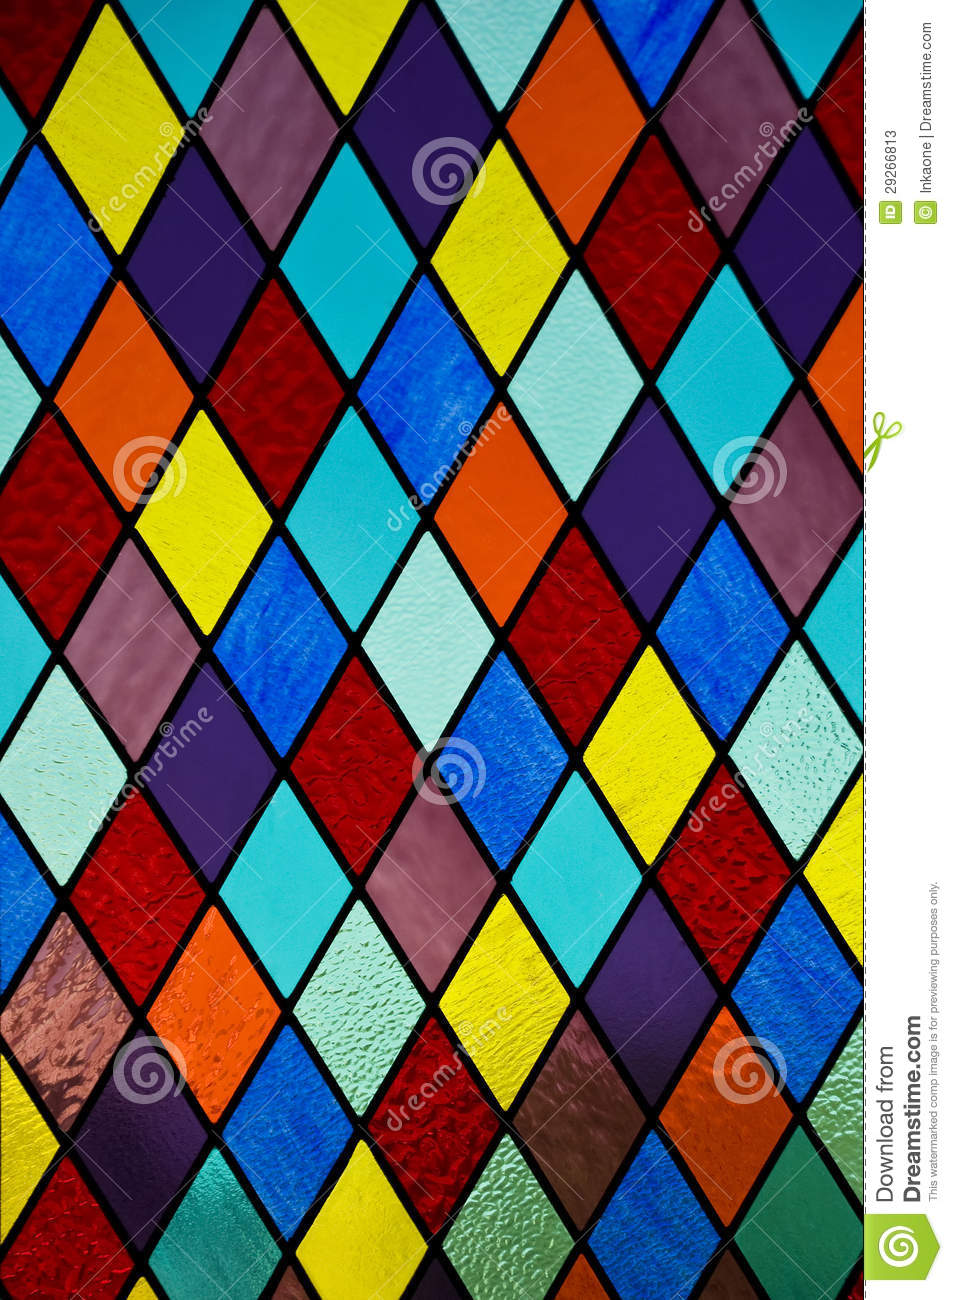 Blue glass window texture stained glass window texture - Stained Glass With Diamond Pattern Stock Photos Image